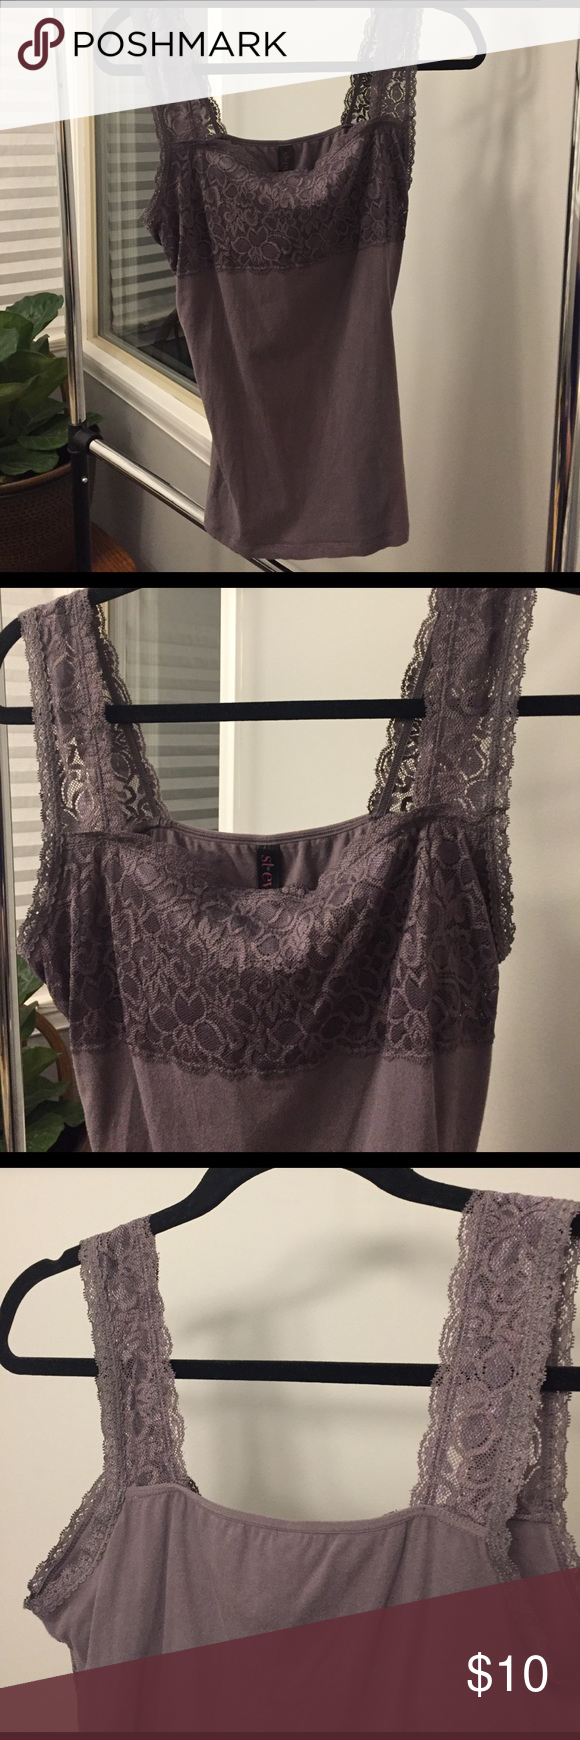 Lace top cami with shelf bra Gently used lace top cami with shelf bra. It's a faded lavender color. Tops Camisoles